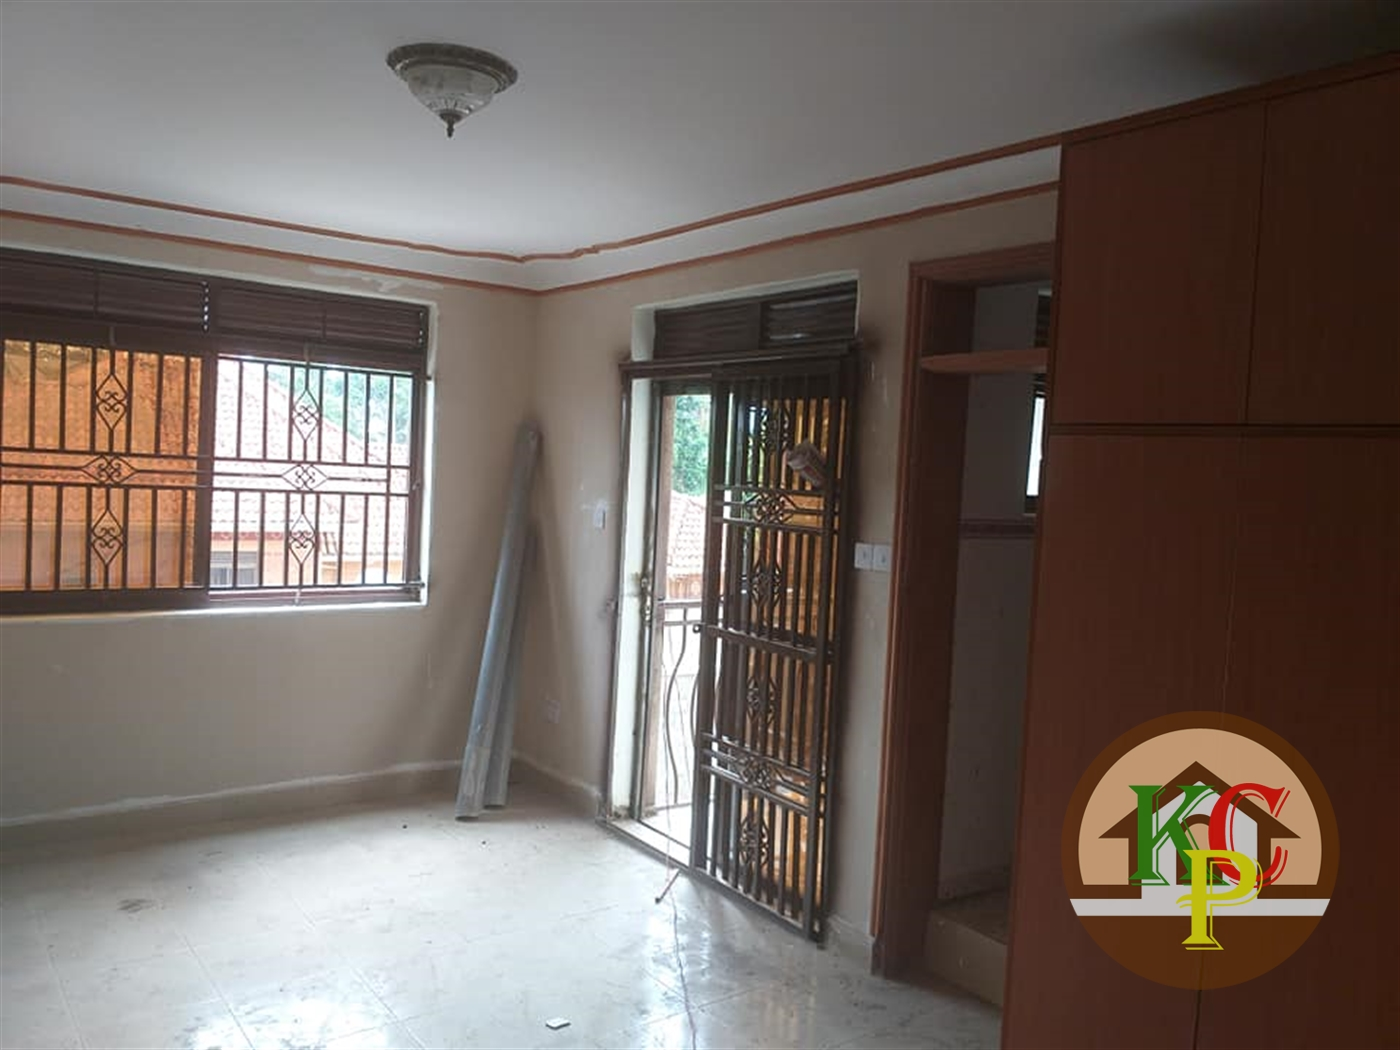 Apartment for rent in Lungujja Kampala